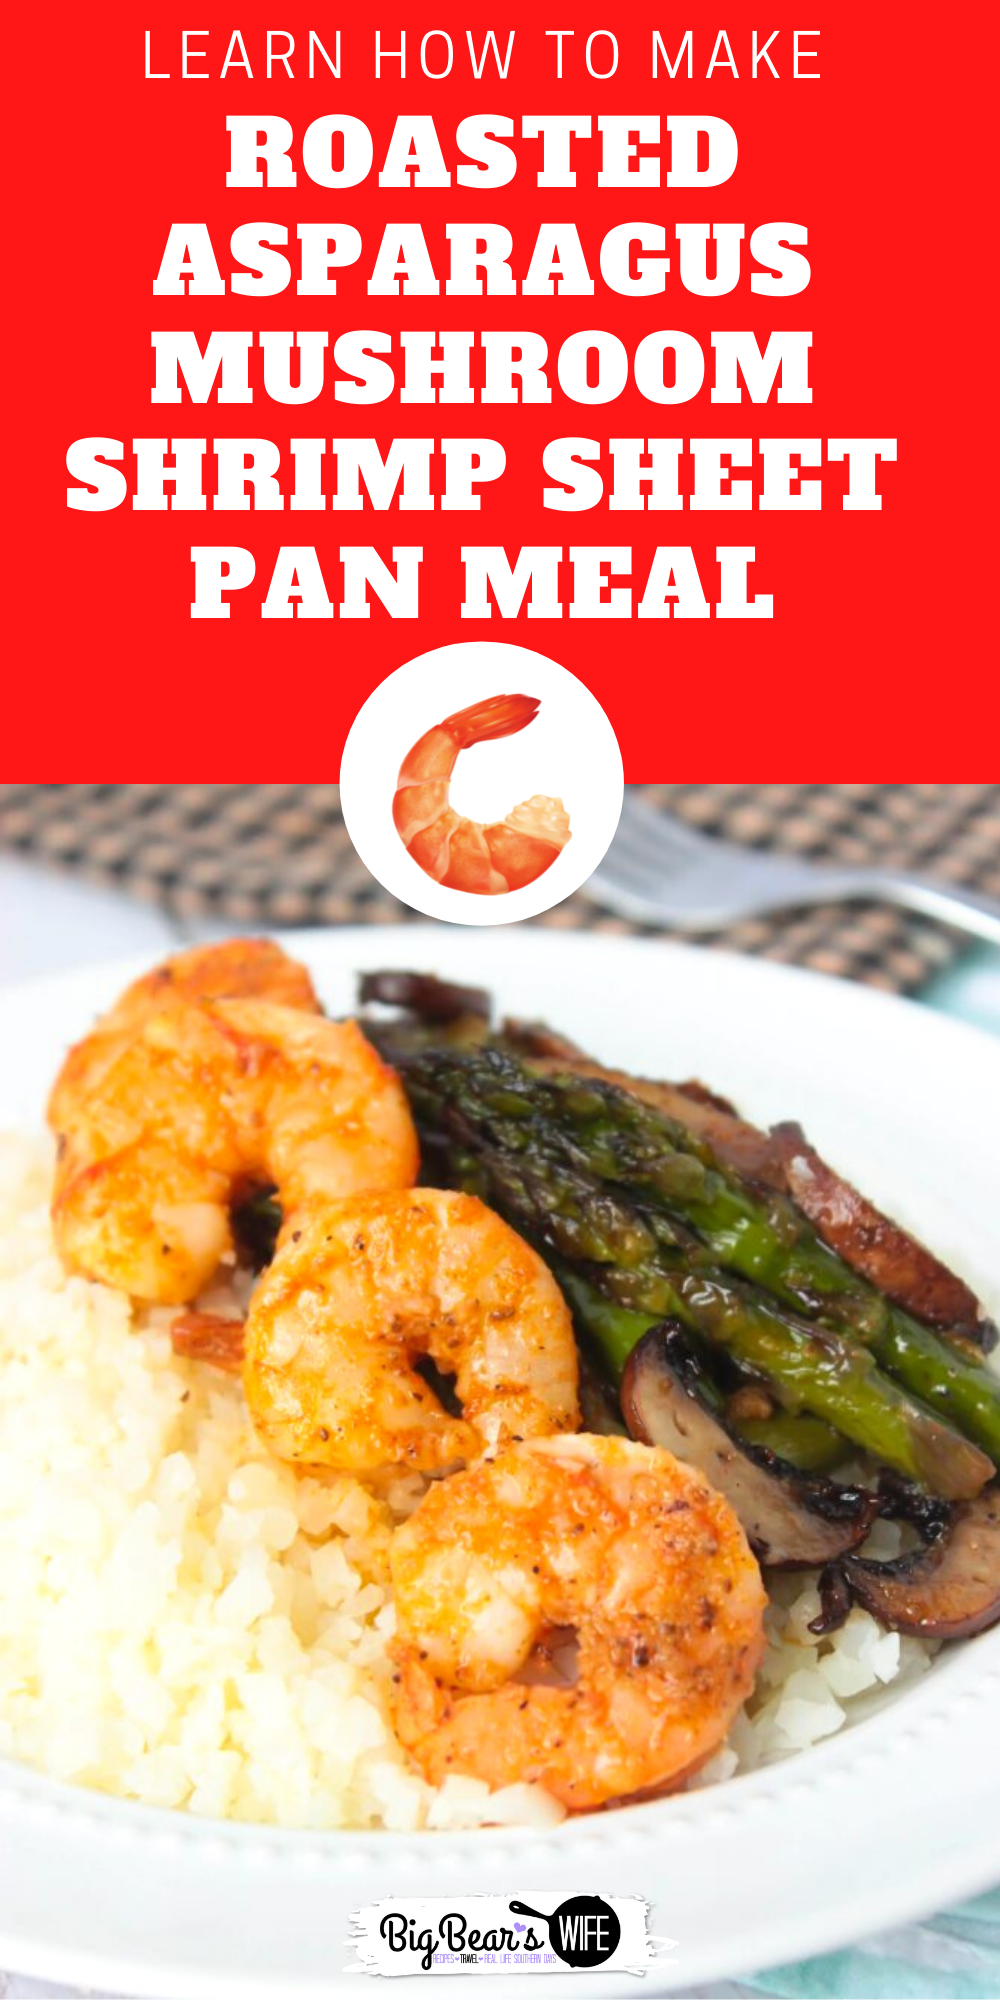 A quick and healthy sheet pan meal that's great for lunch or dinner! This Roasted Asparagus Mushroom Shrimp Sheet Pan Meal is perfect served as is, or spoon it over rice, cauliflower rice or mashed potatoes. via @bigbearswife